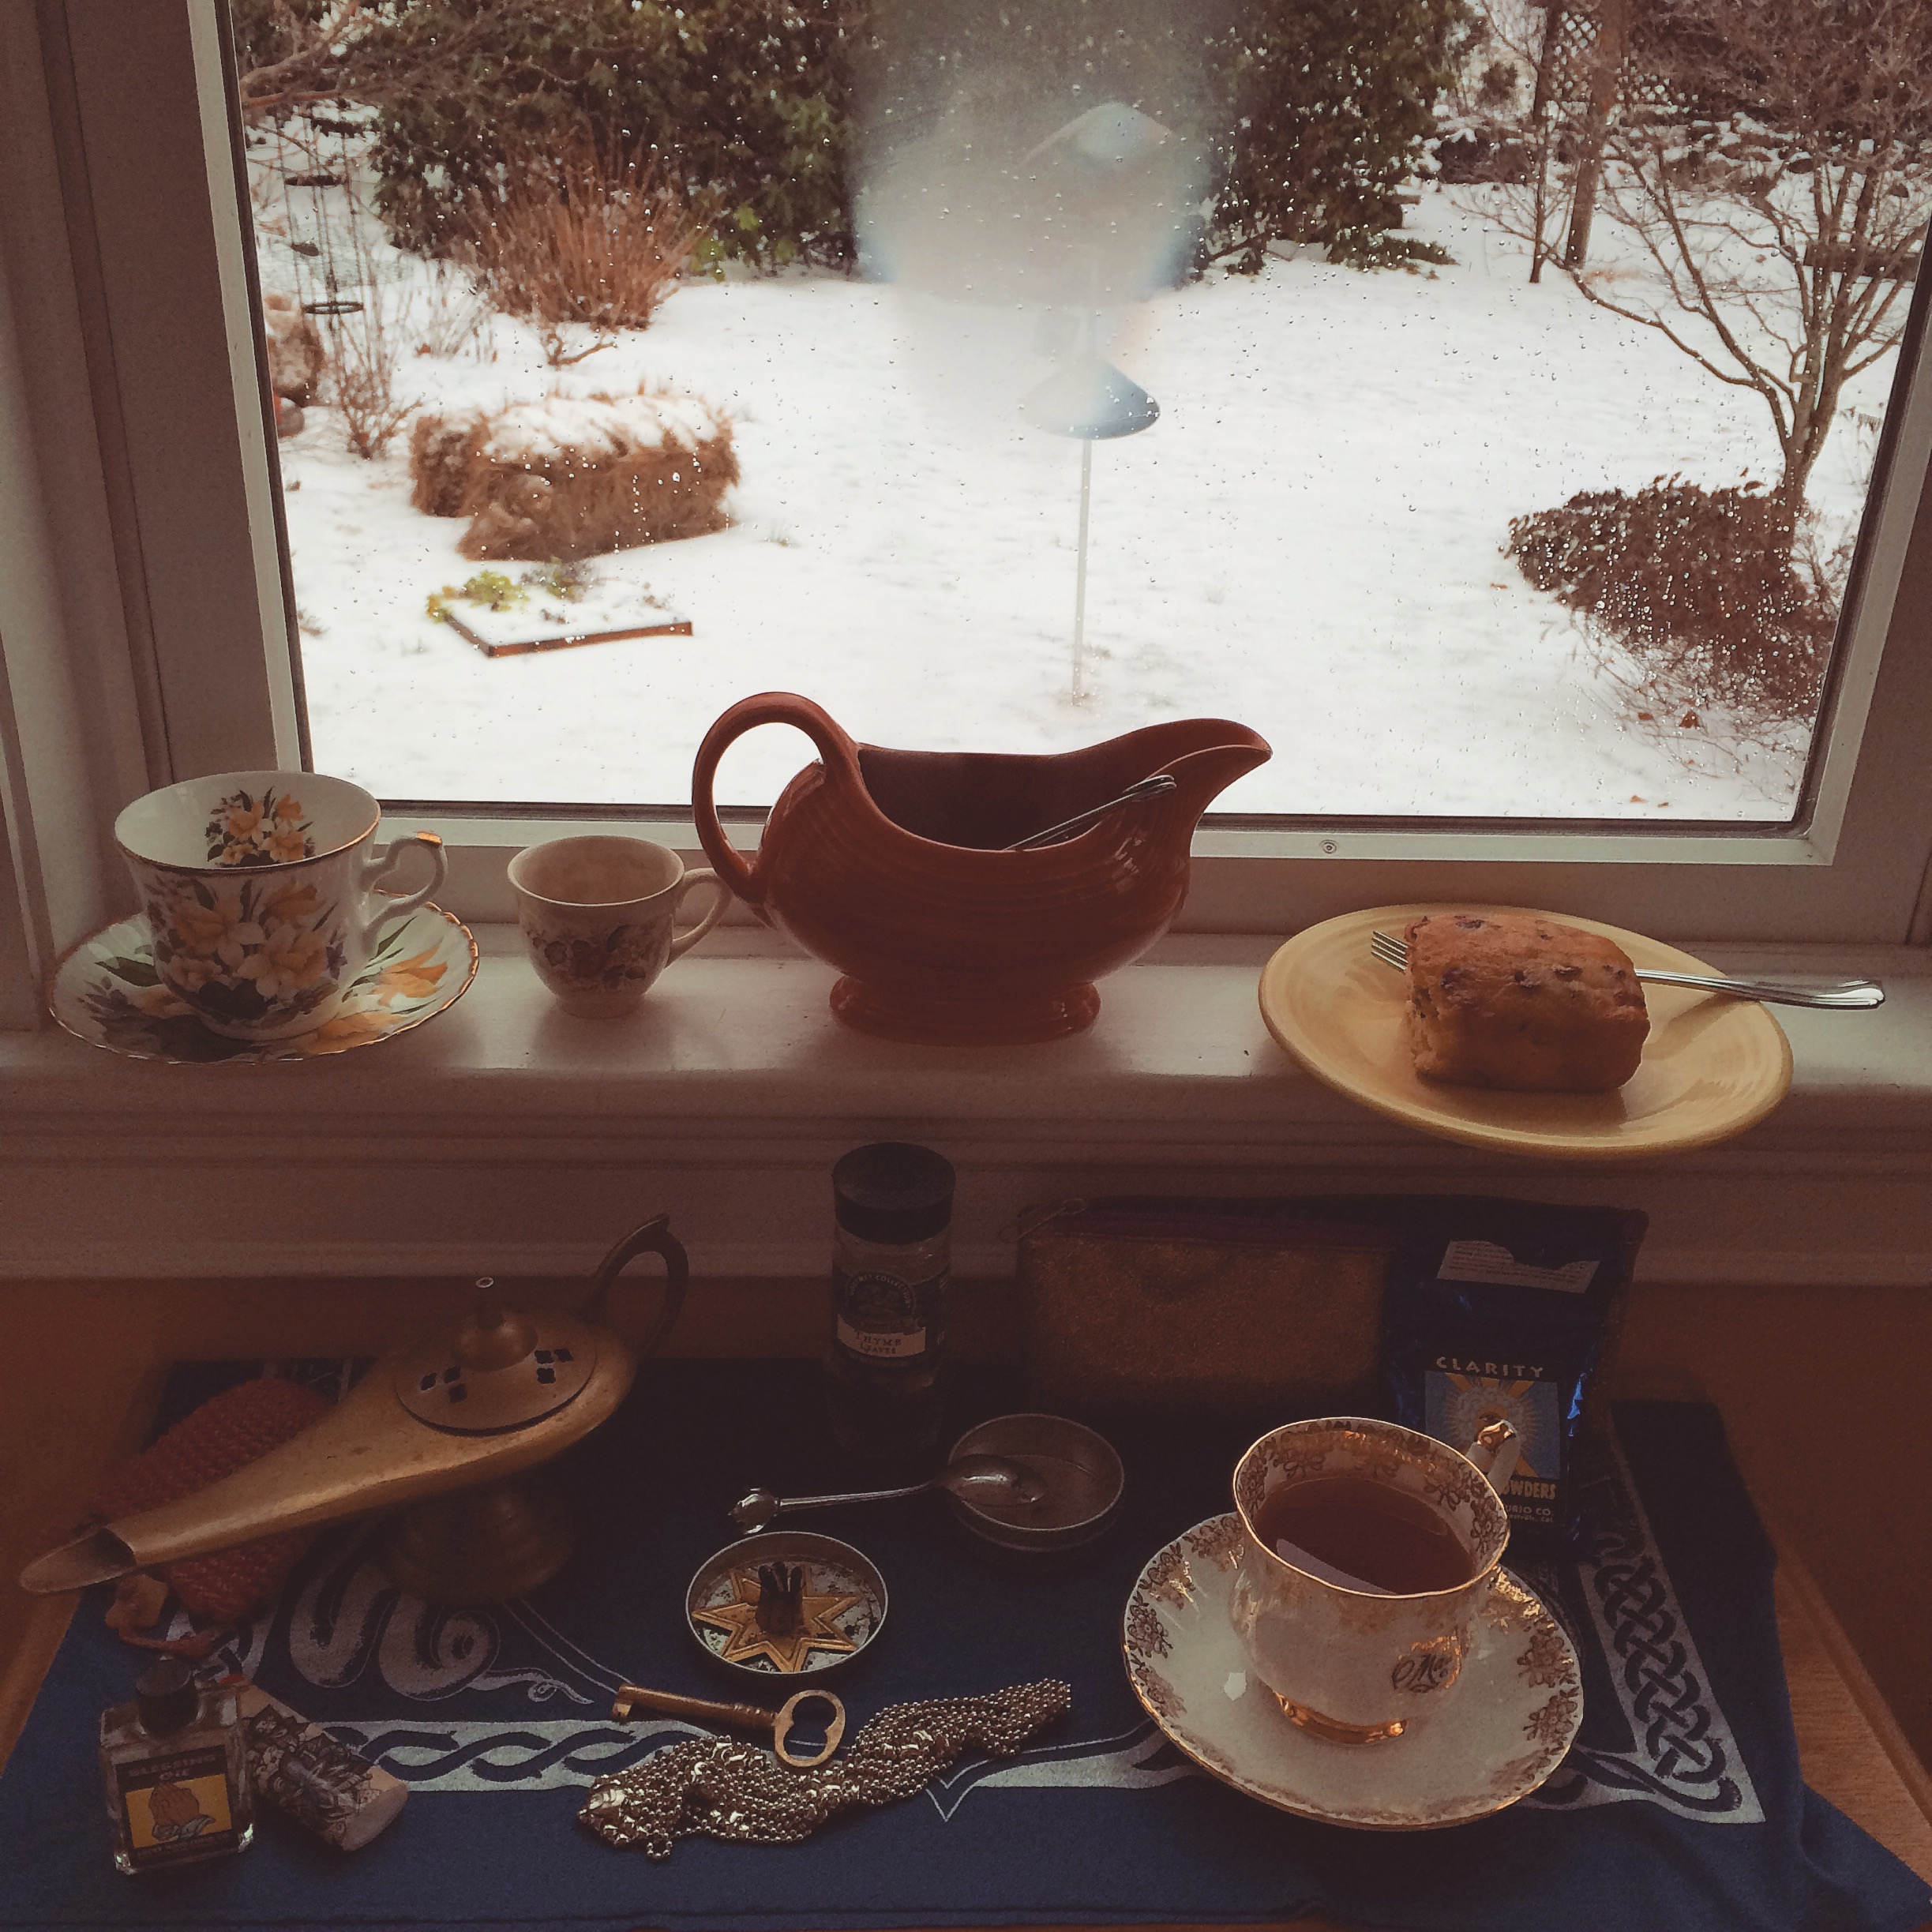 a windowsill altar with makeshift gravy boat teapot, food and drink offerings, and magical curios